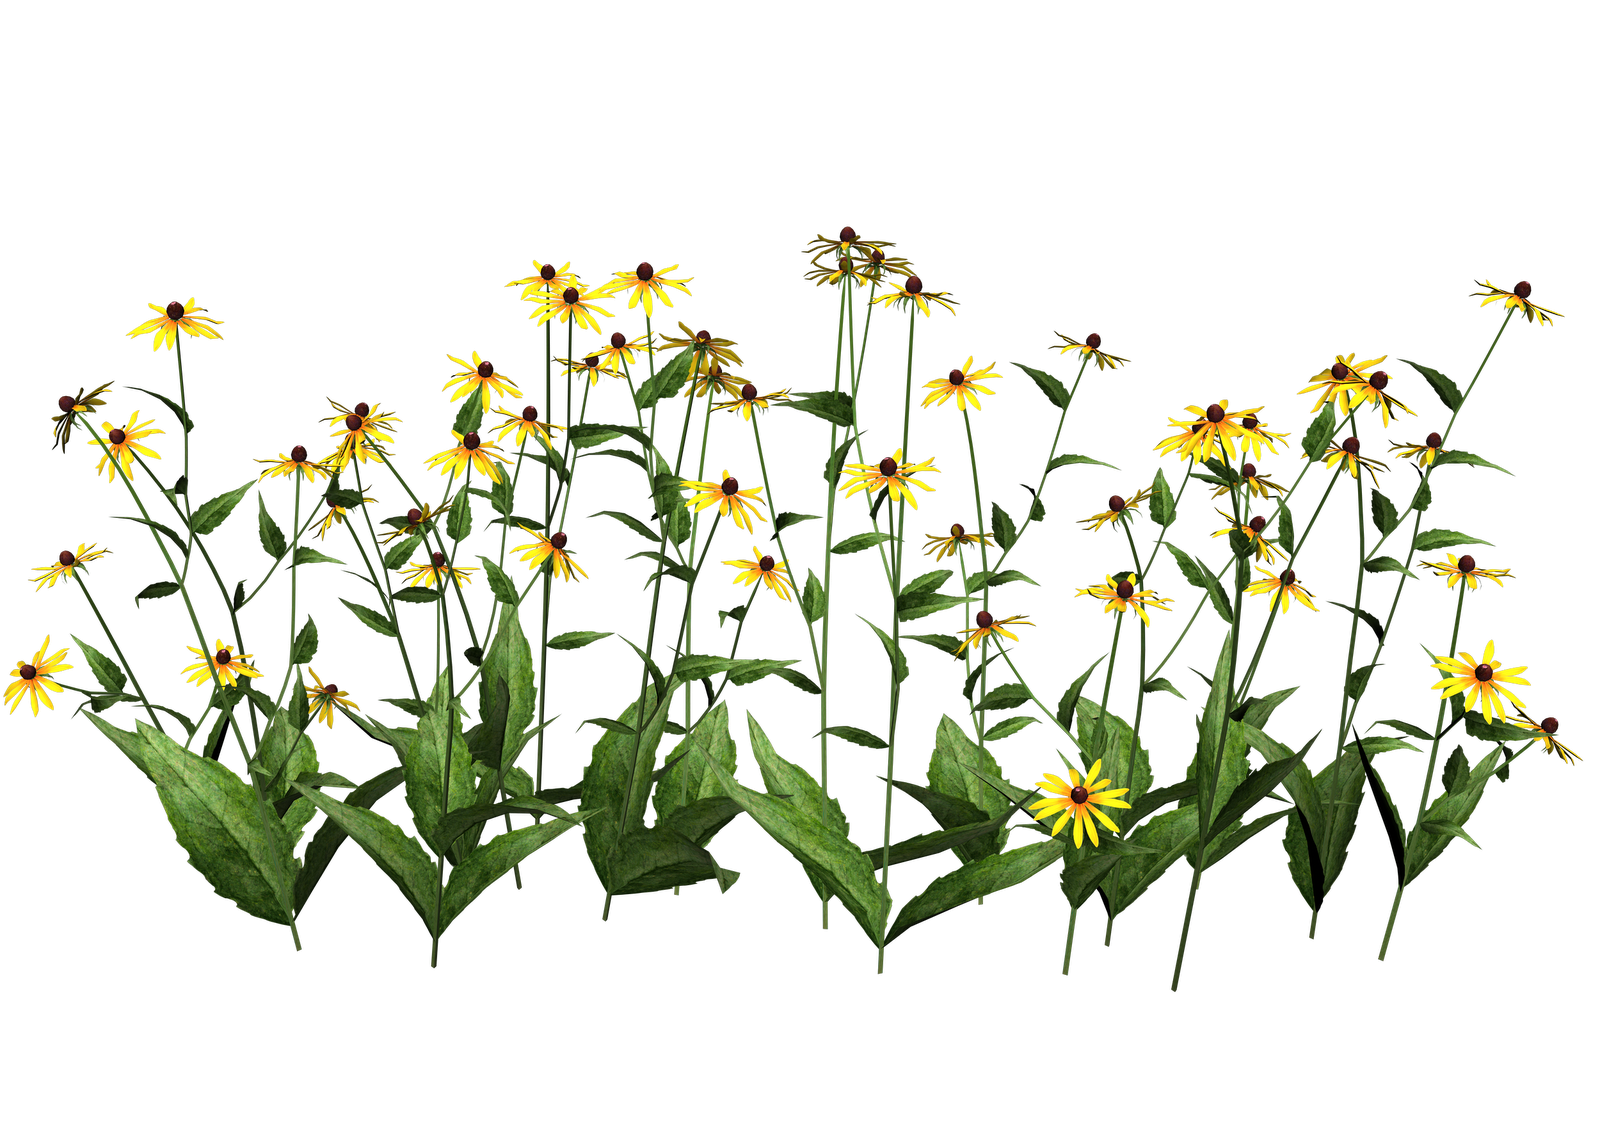 Planting flower clipart clipart transparent stock png | Free High Resolution graphics and clip art: misc plant png ... clipart transparent stock